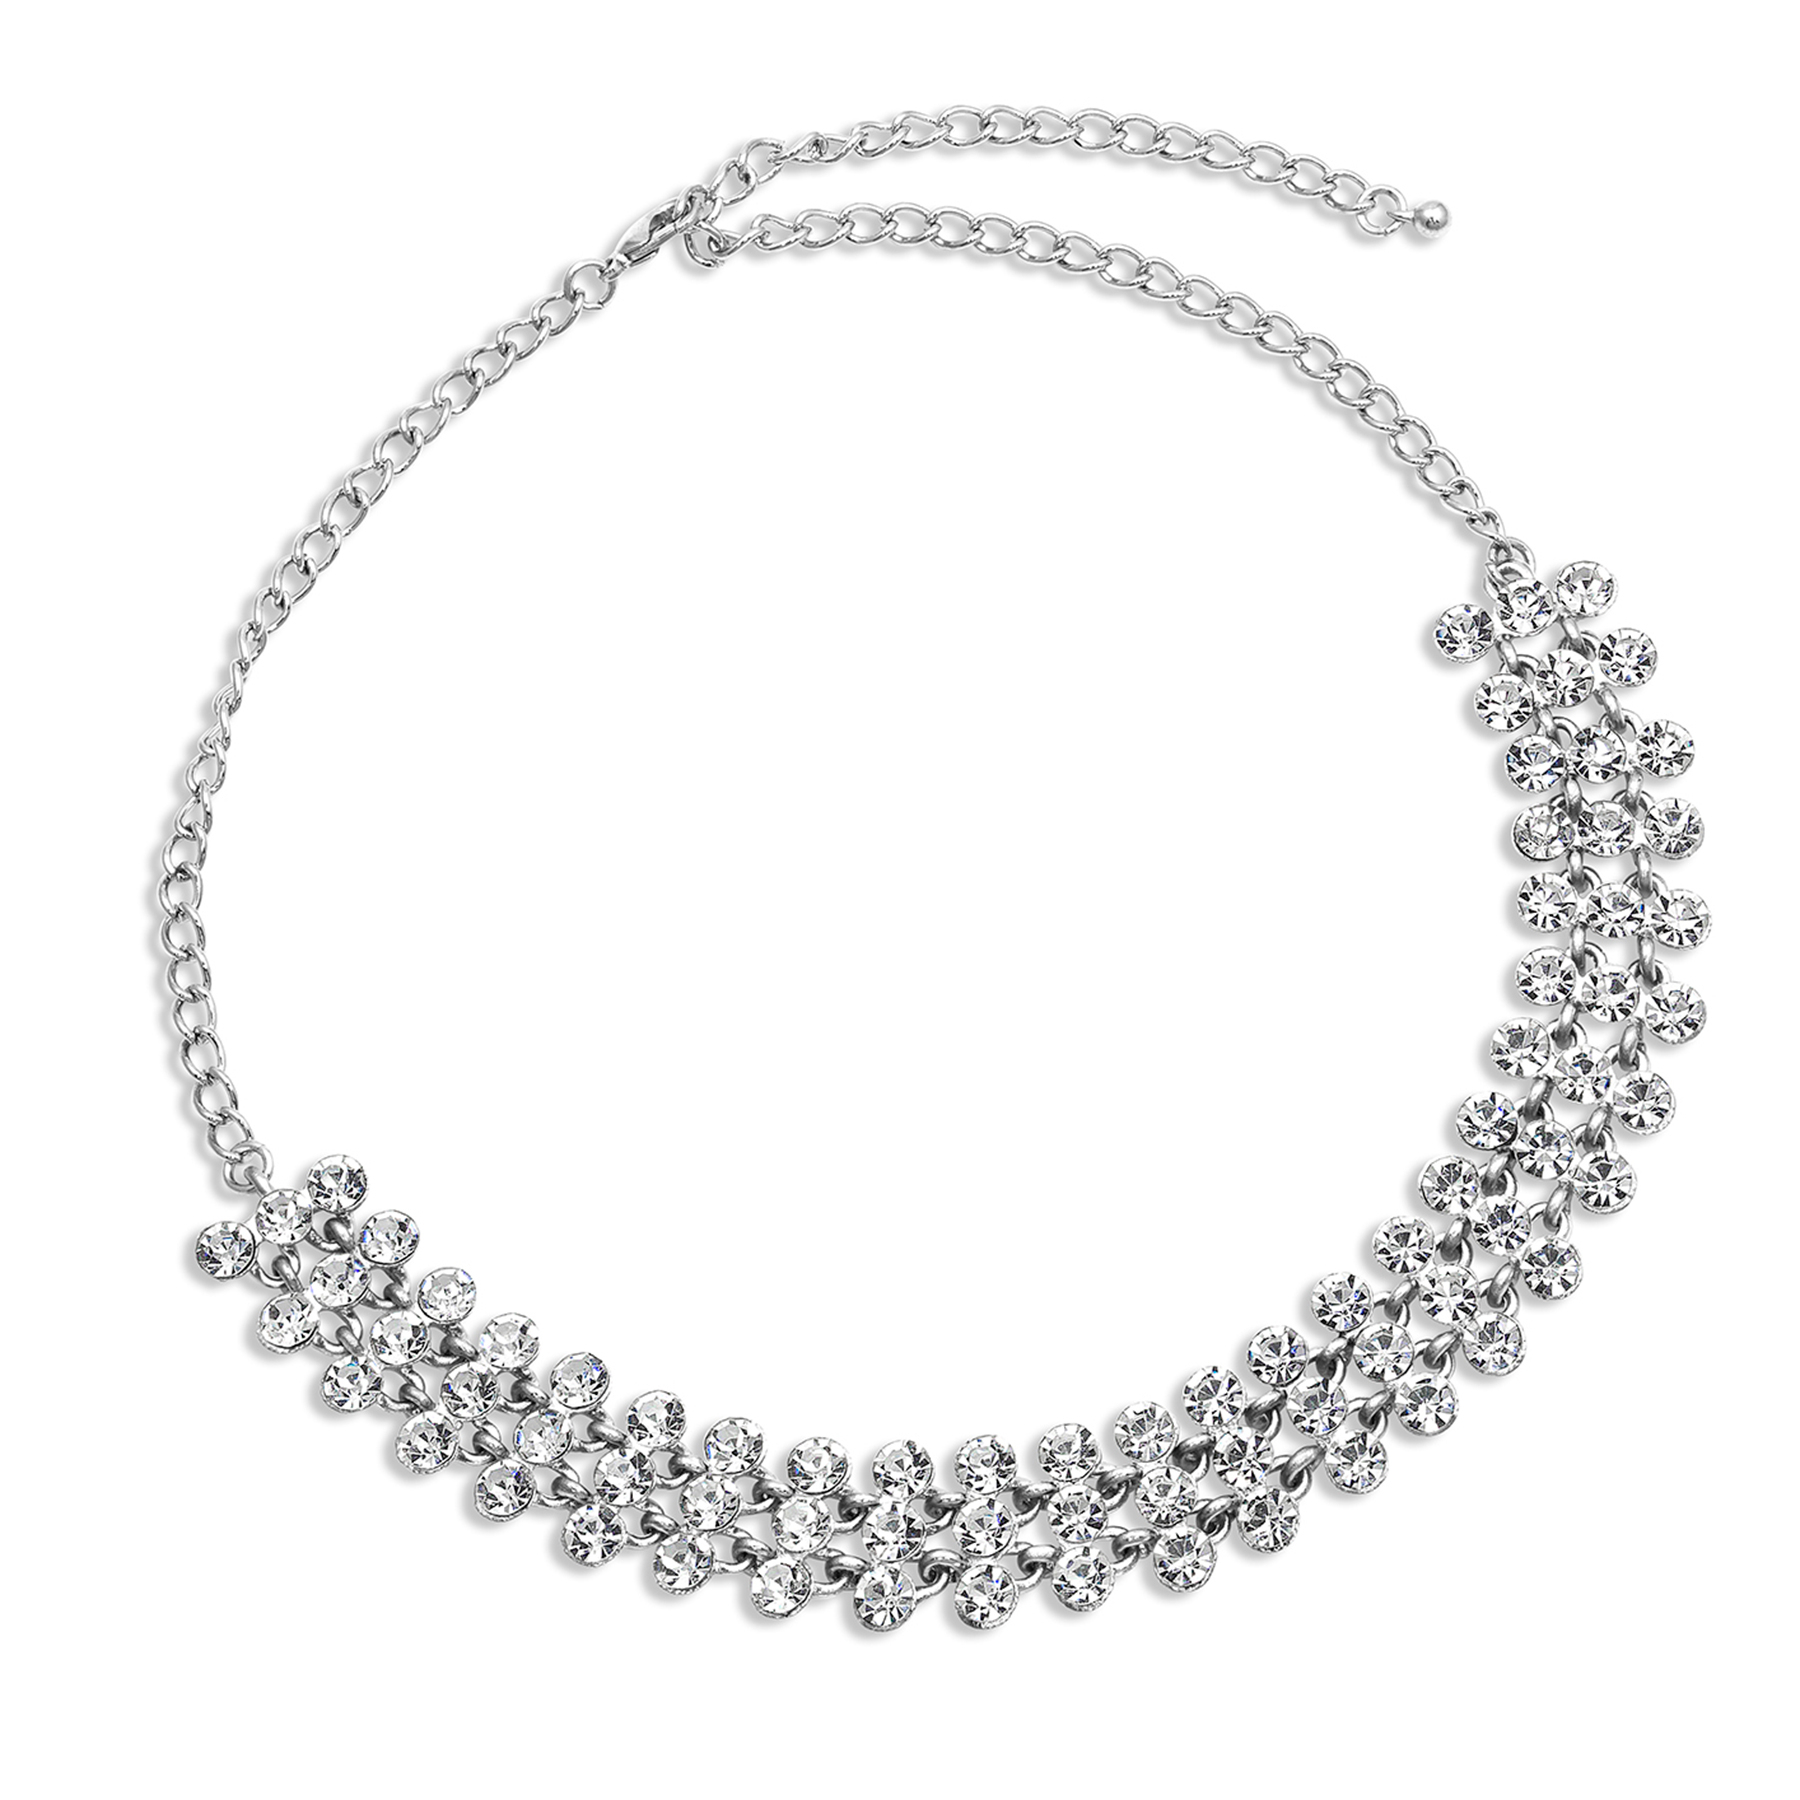 Search Results For: 'silver Necklace Slider Chokers For Women Pertaining To Current Woven Fabric Choker Slider Necklaces (View 5 of 25)